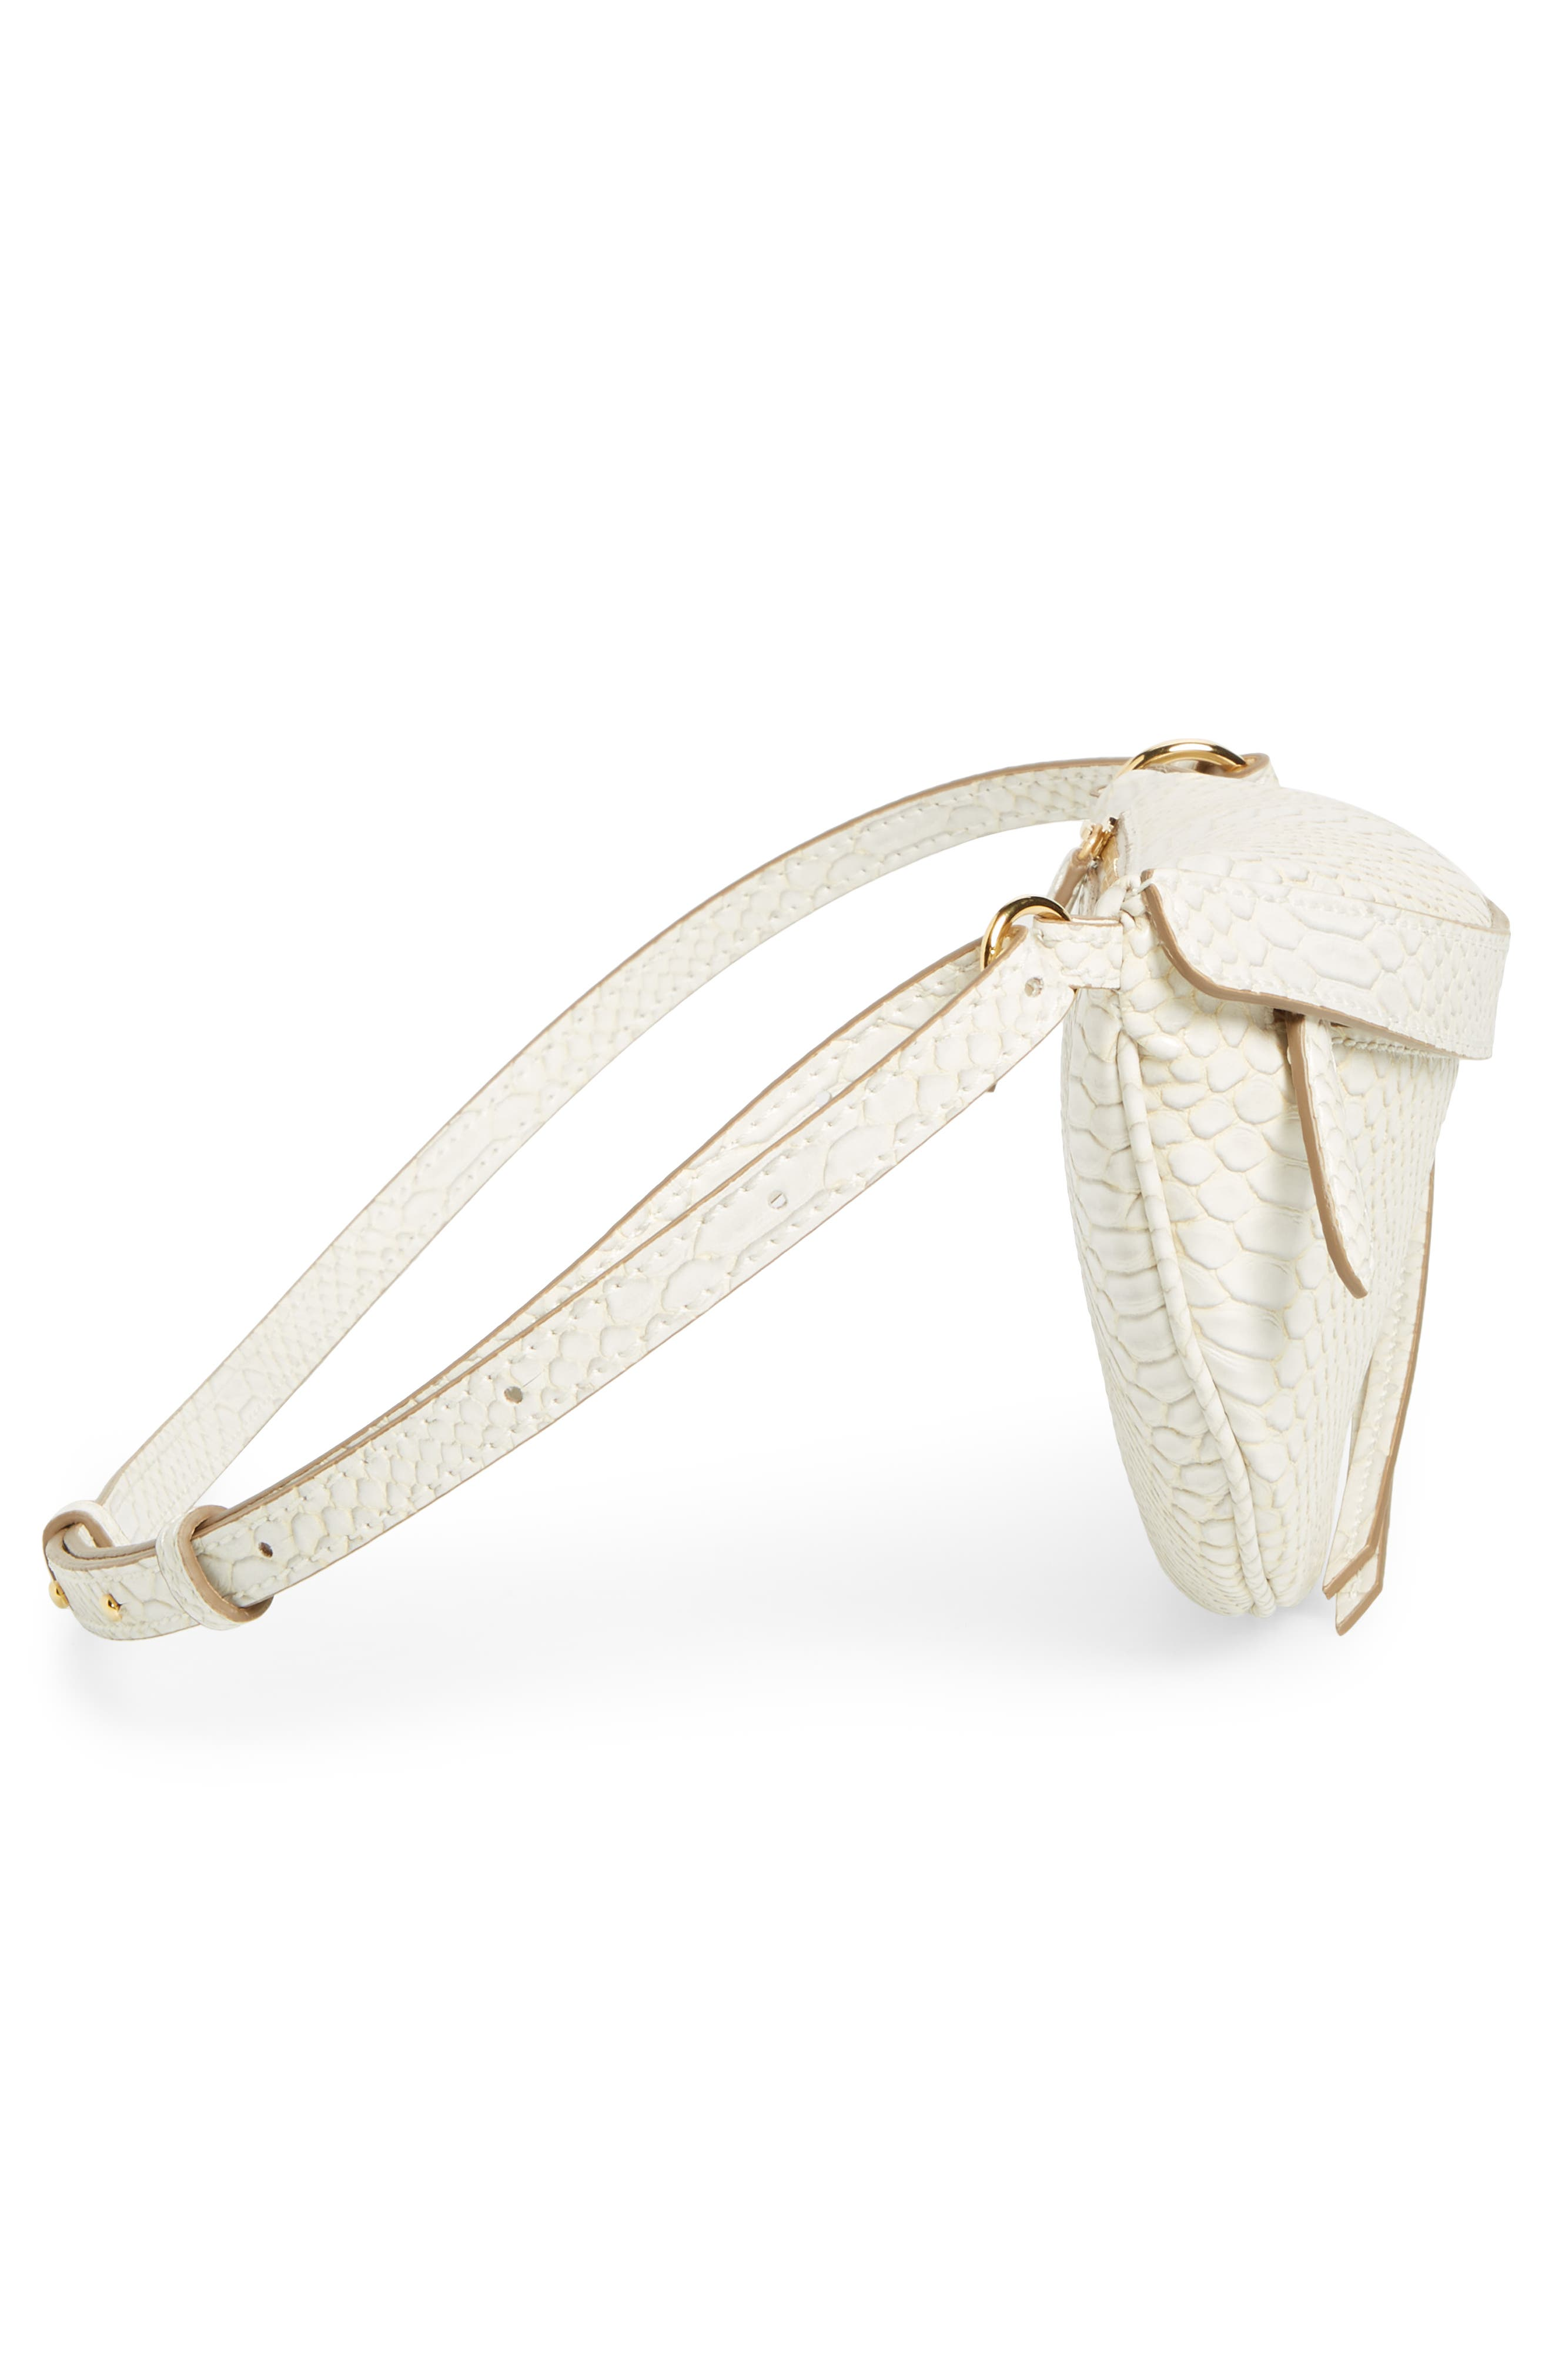 Alter Snake Faux Leather Fanny Pack,                             Alternate thumbnail 6, color,                             IVORY